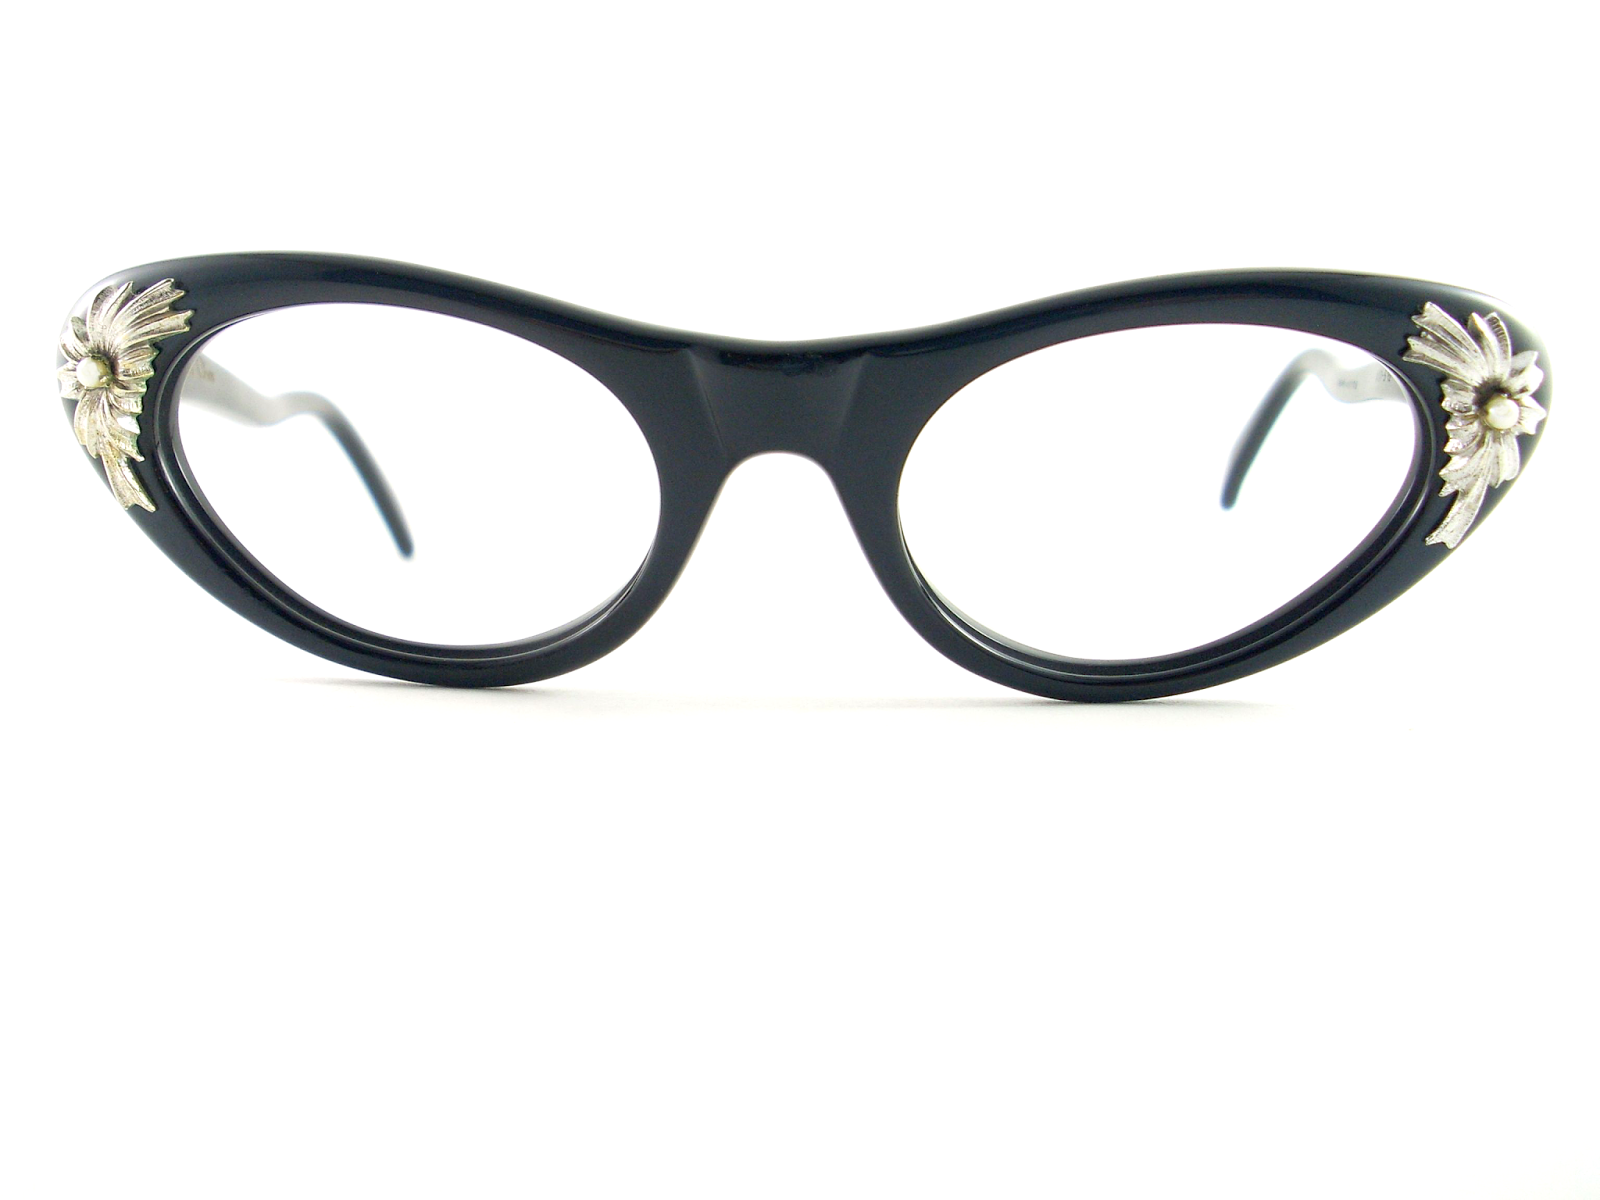 Dior Glasses Frames Cat Eye : Vintage Eyeglasses Frames Eyewear Sunglasses 50S: January 2015